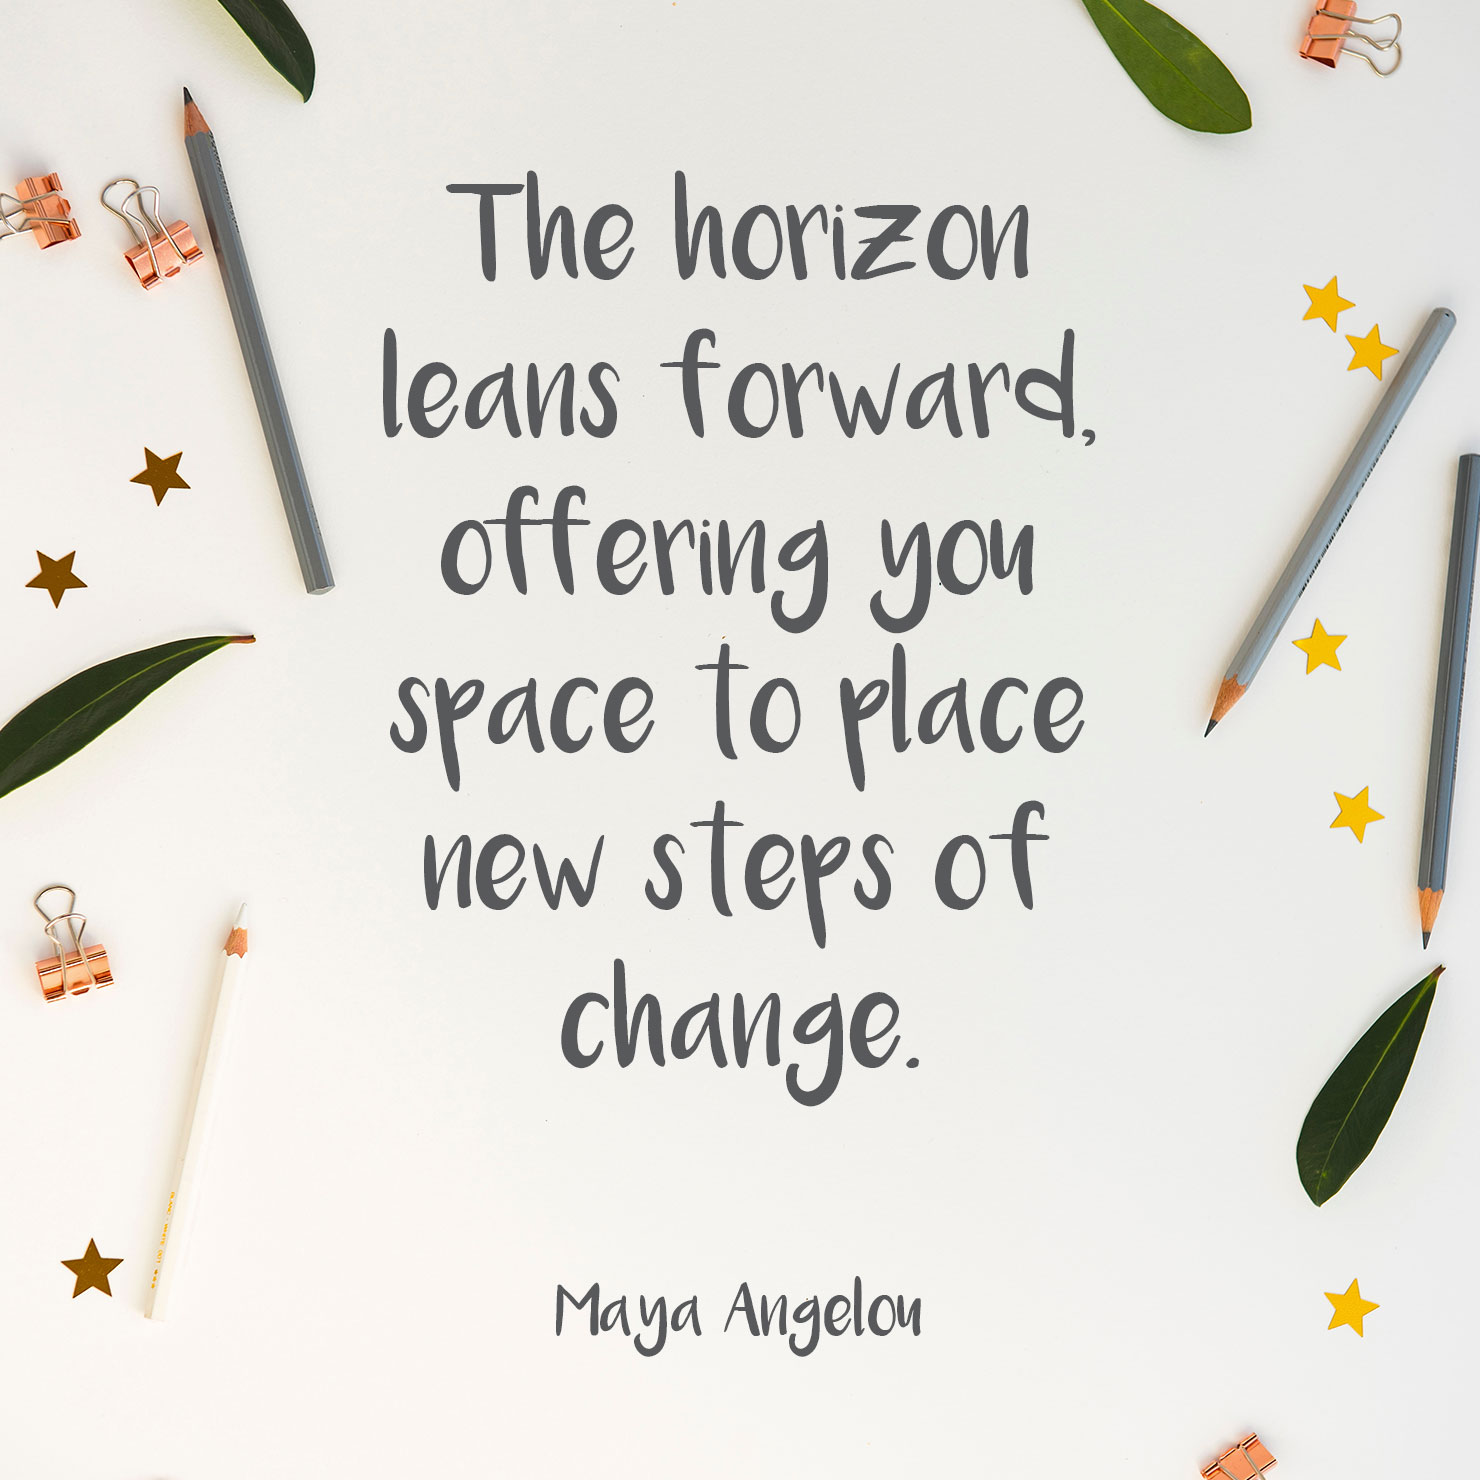 for daughter graduation quote: the horizon leans forward offering you space to place new steps of change - Maya Angelou